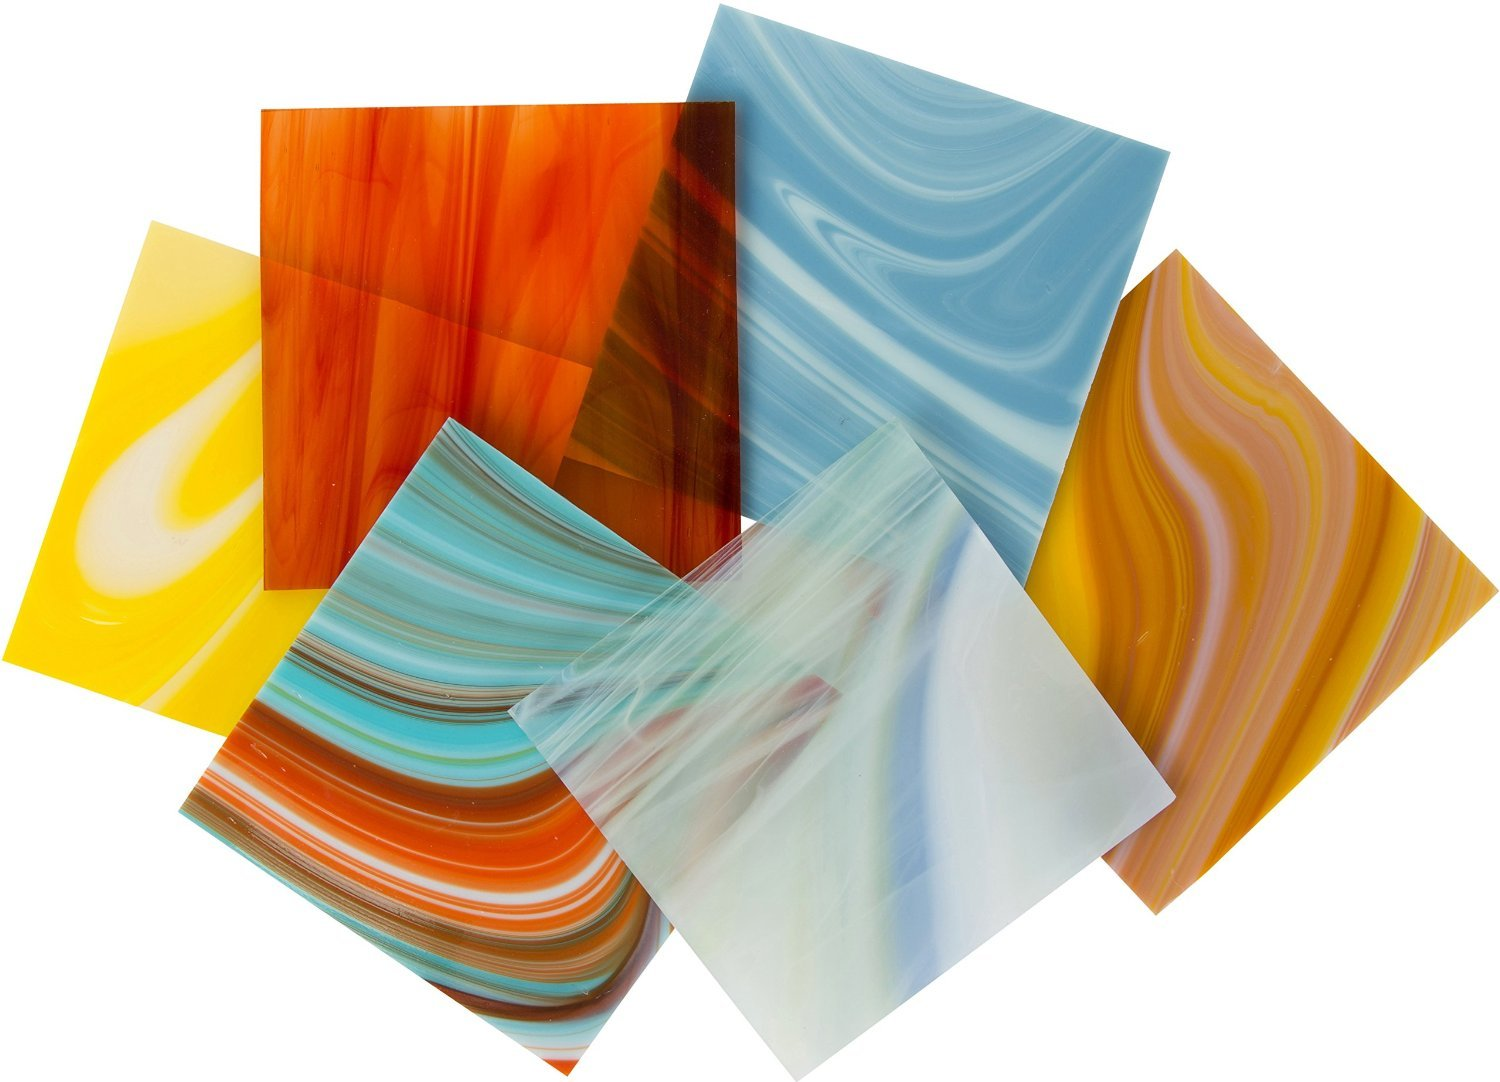 On Sale! COE 96 Deluxe System 96 Assorted Fusible Glass Pack - 4 X 4 Sheets - 6 Pack by iDichroic (Image #1)